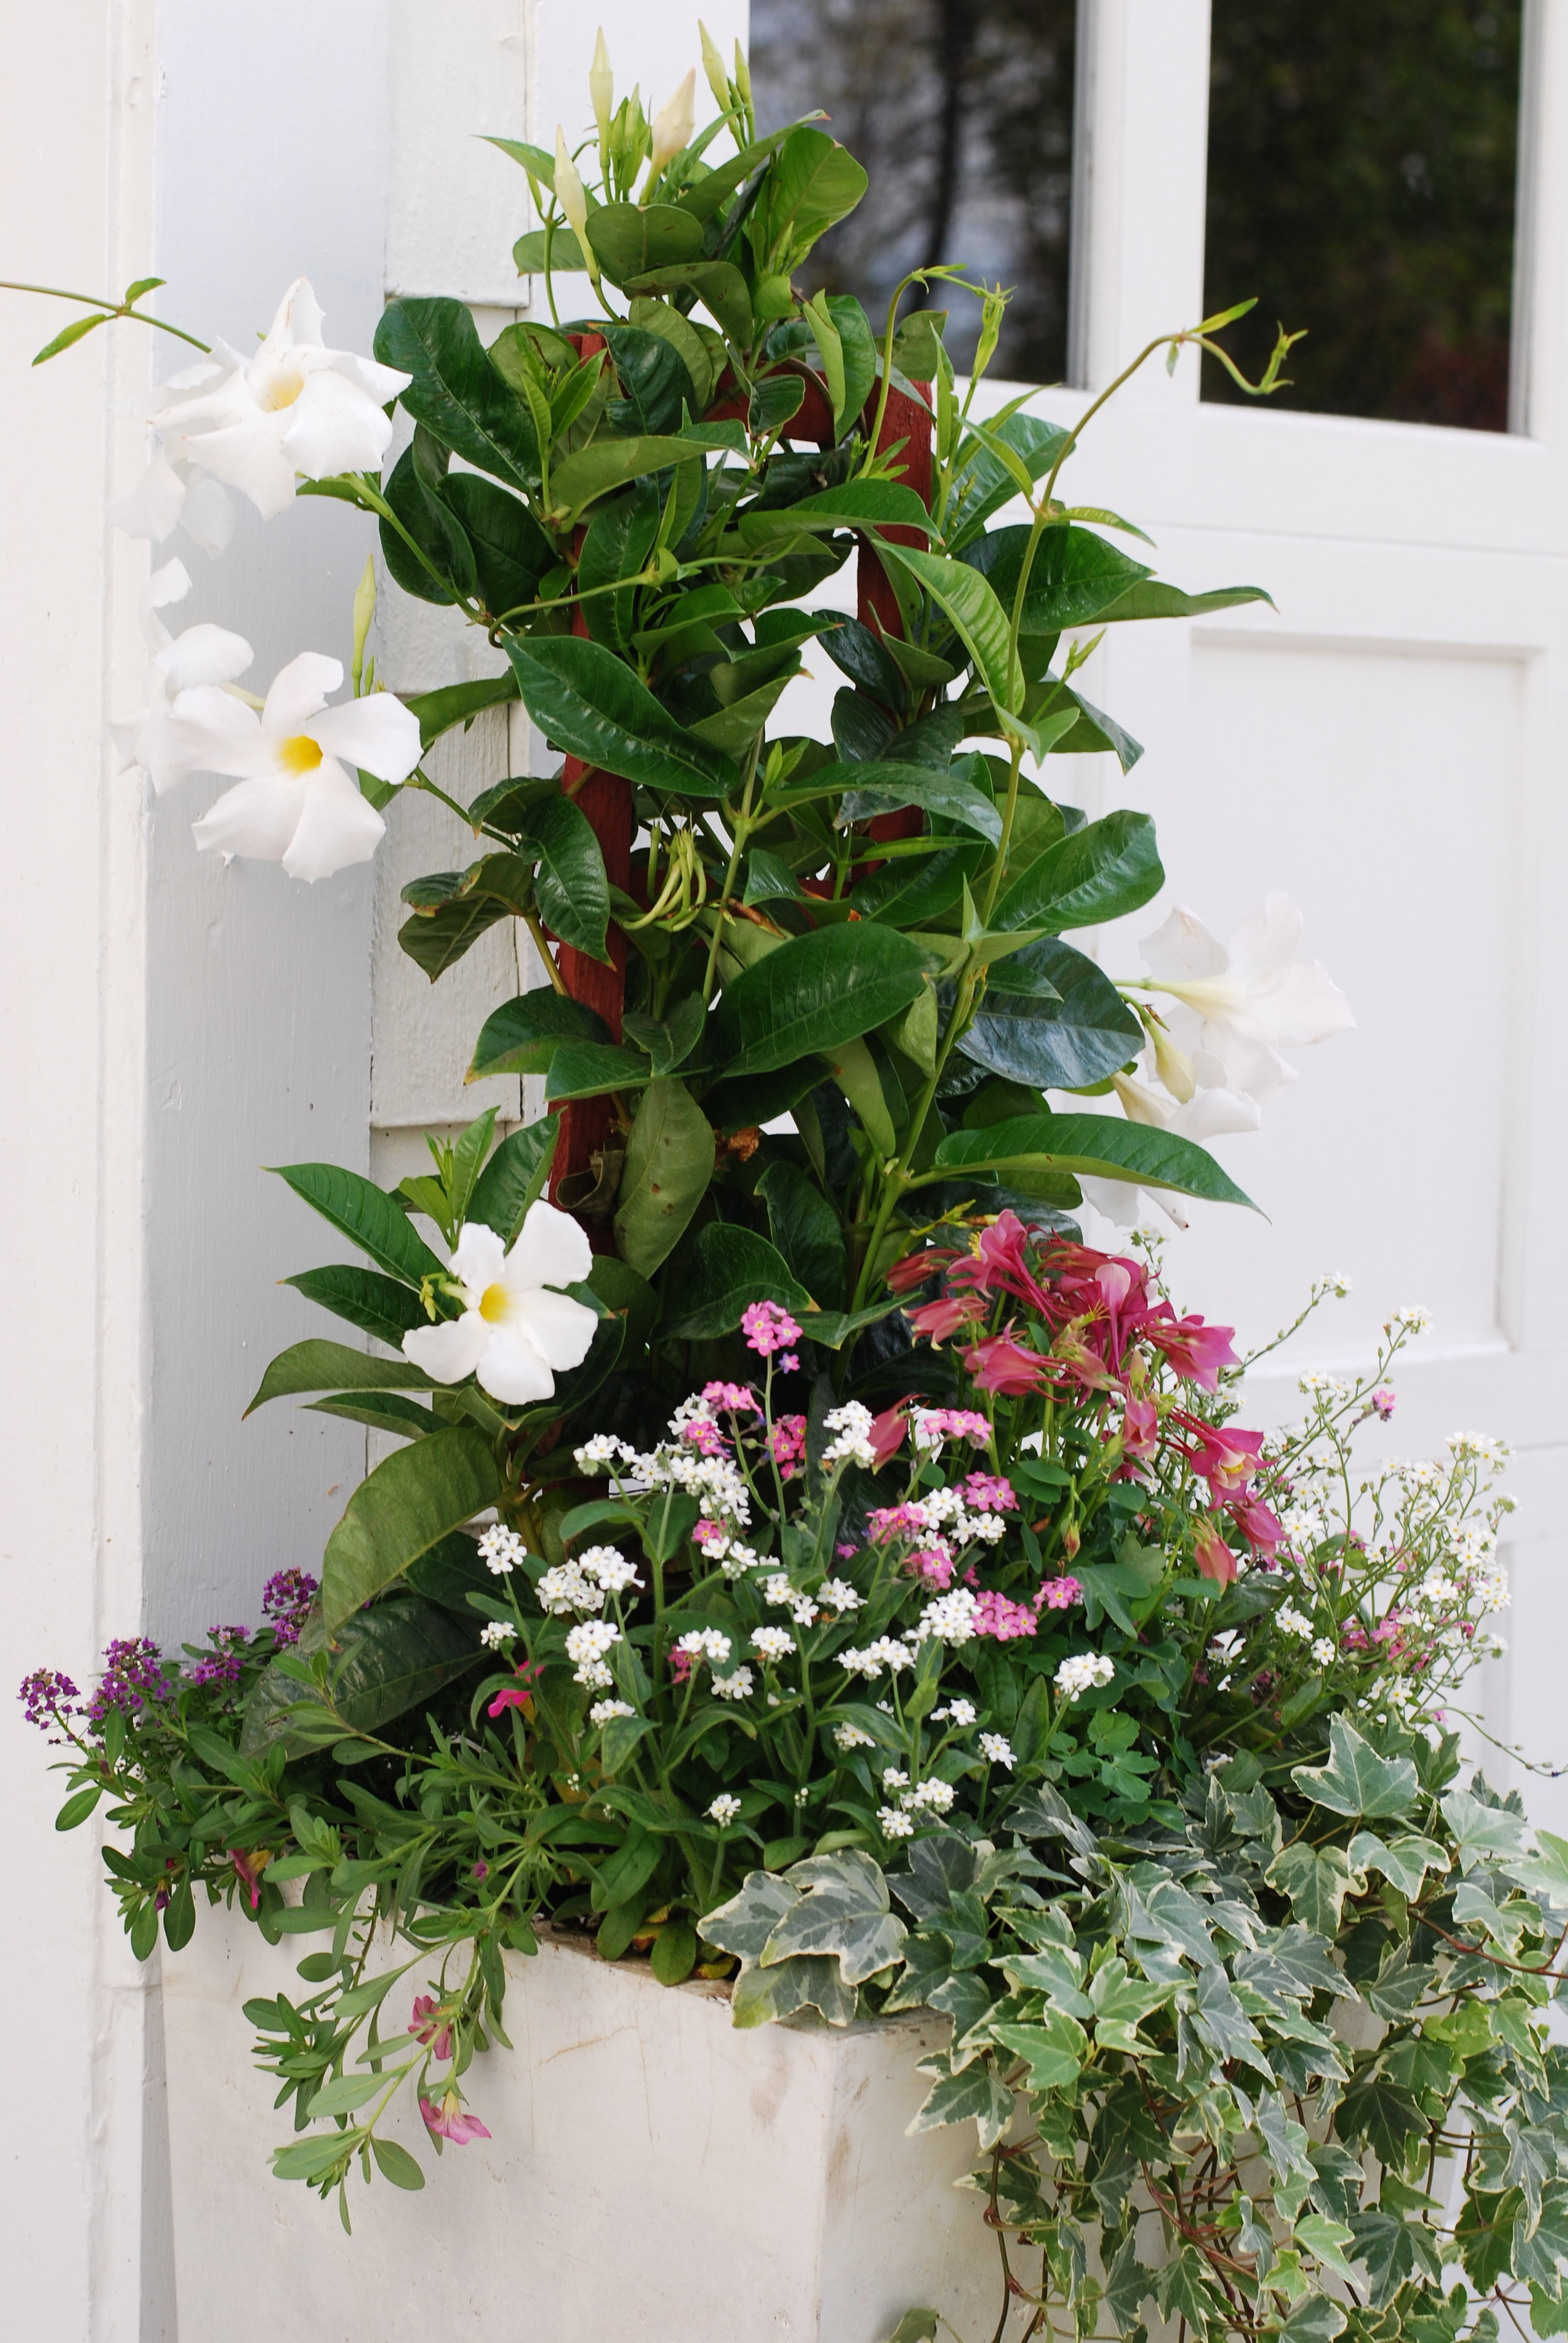 Tall container with mandevilla, forget-me-nots and columbine.